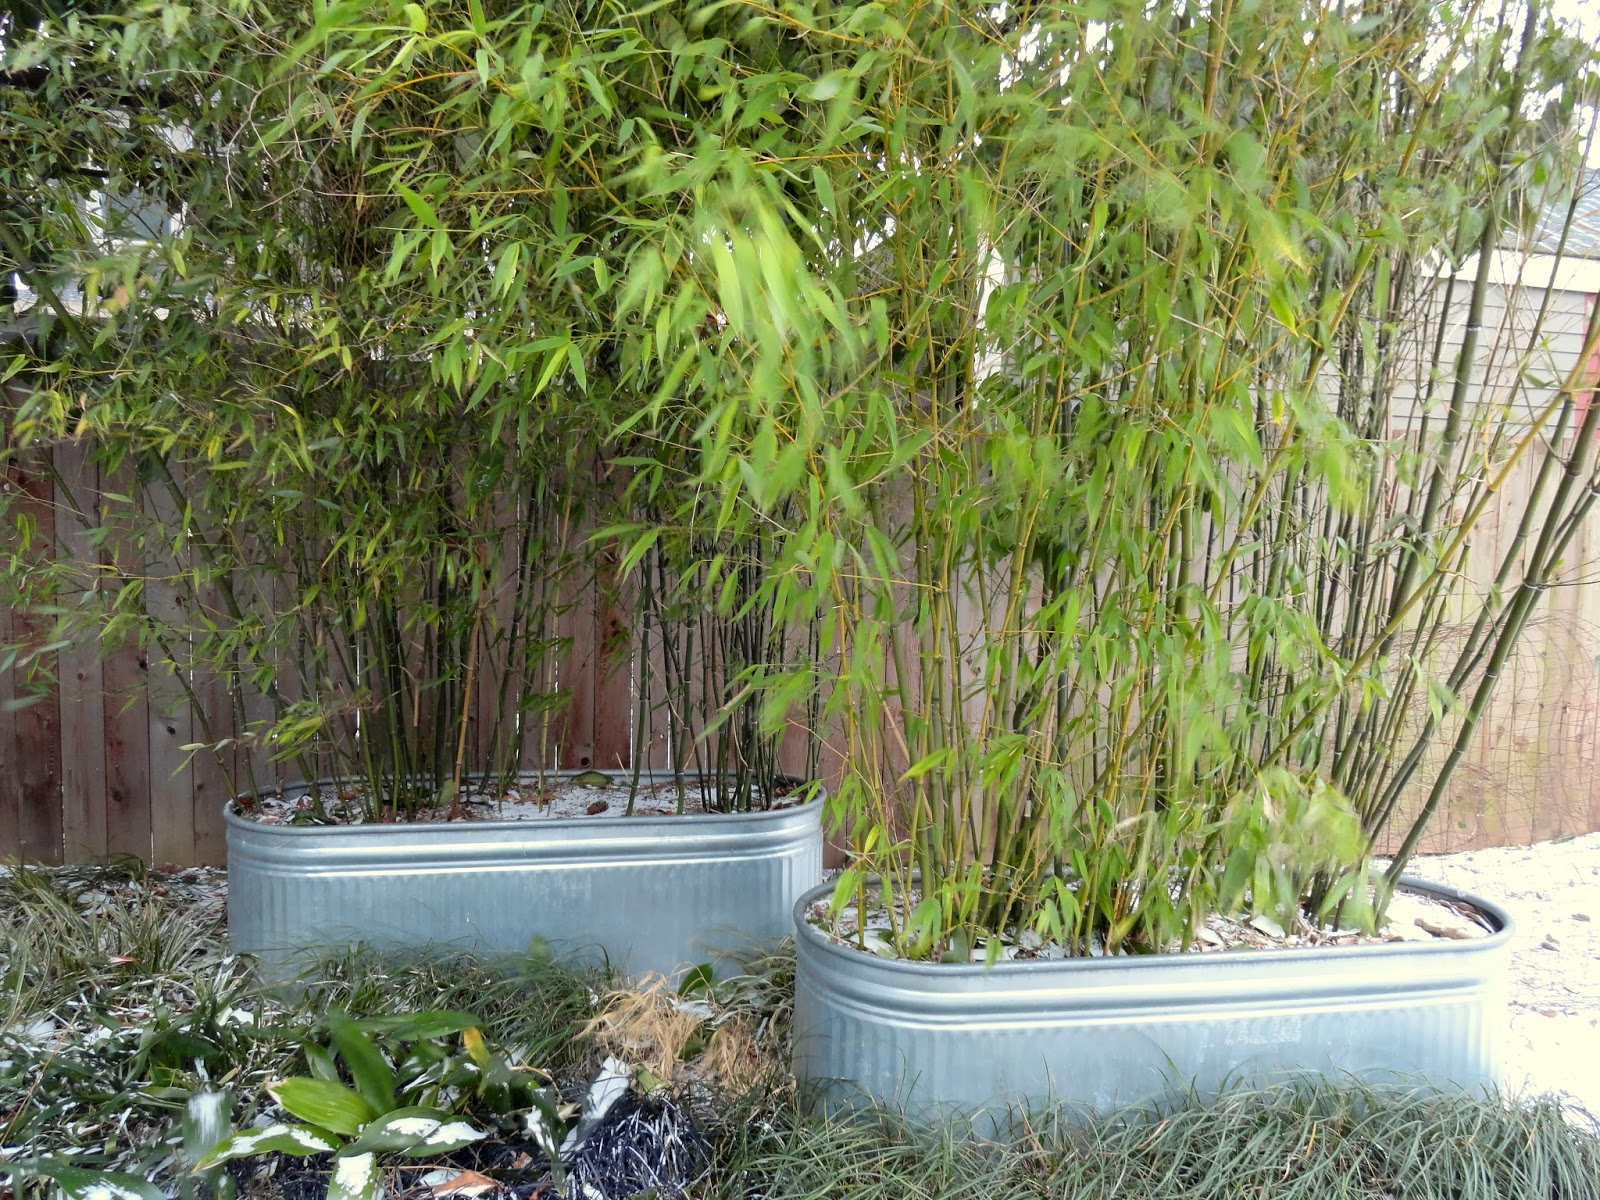 Danger Garden To Bamboo Or Not To Bamboo That Is The Question